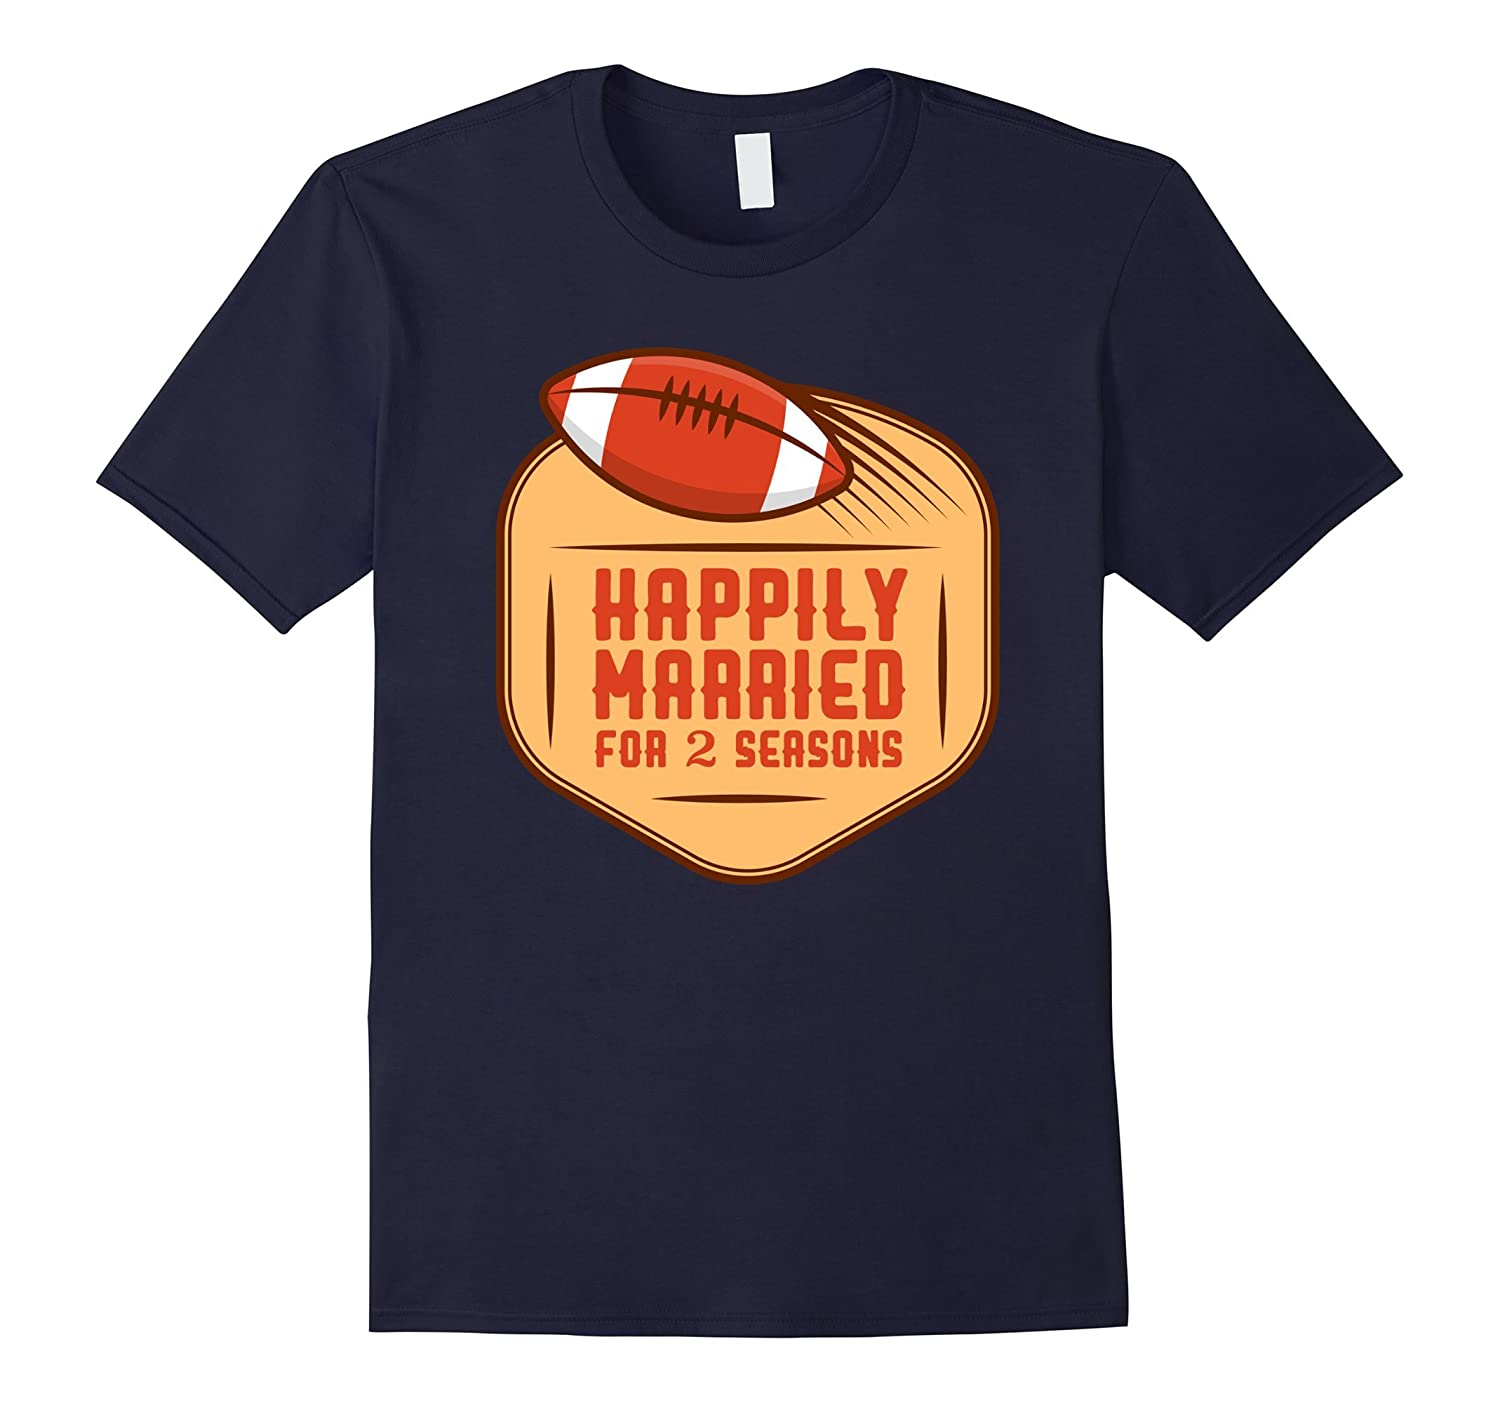 2nd WEDDING ANNIVERSARY Shirt - Football Couple Season Shirt-ANZ